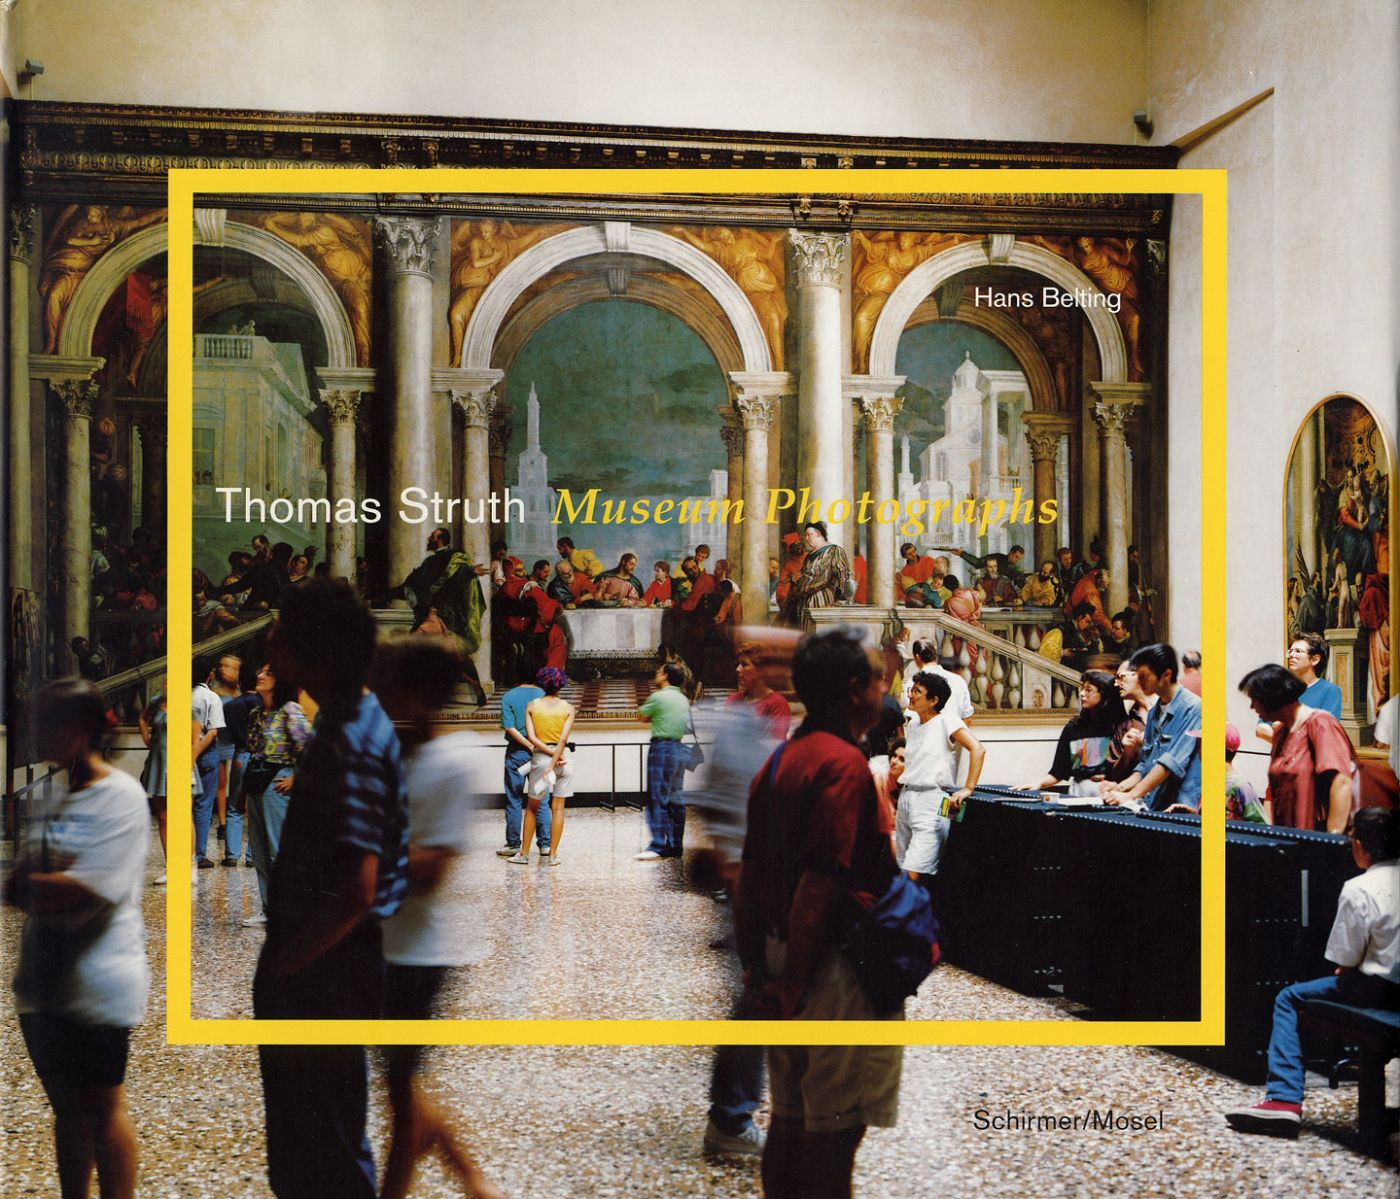 Thomas Struth: Museum Photographs [SIGNED]